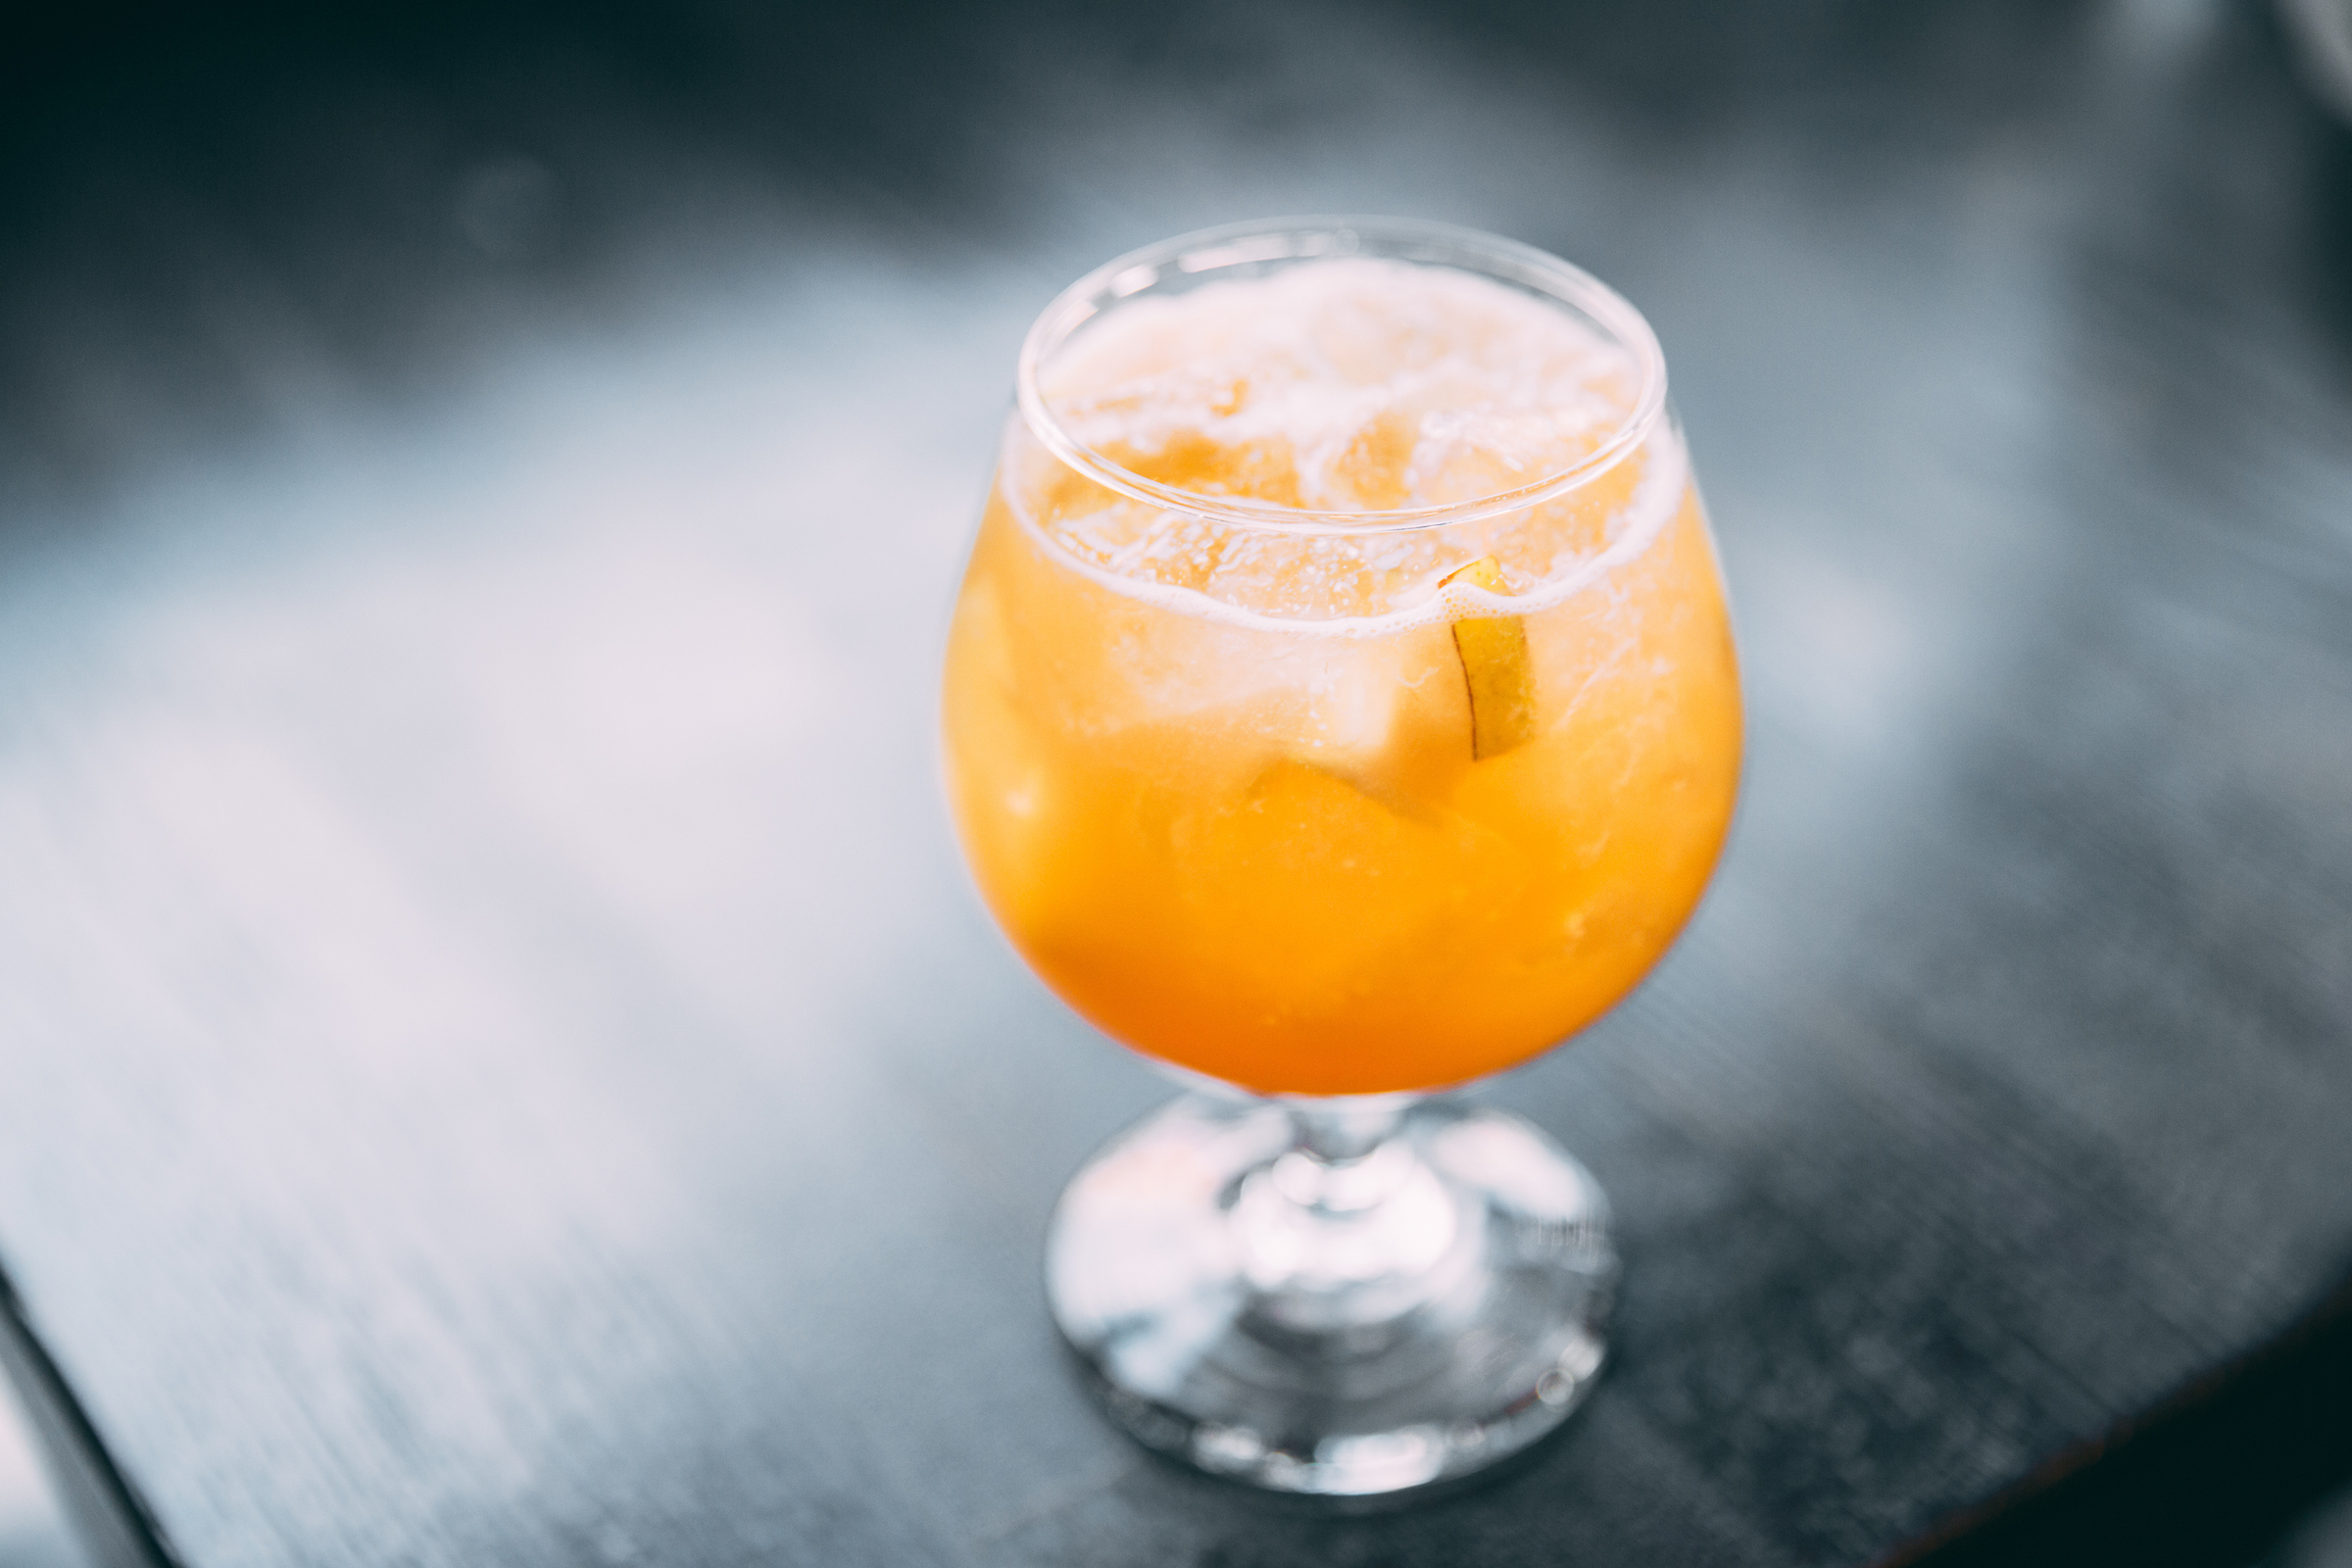 A glass of orange sangria